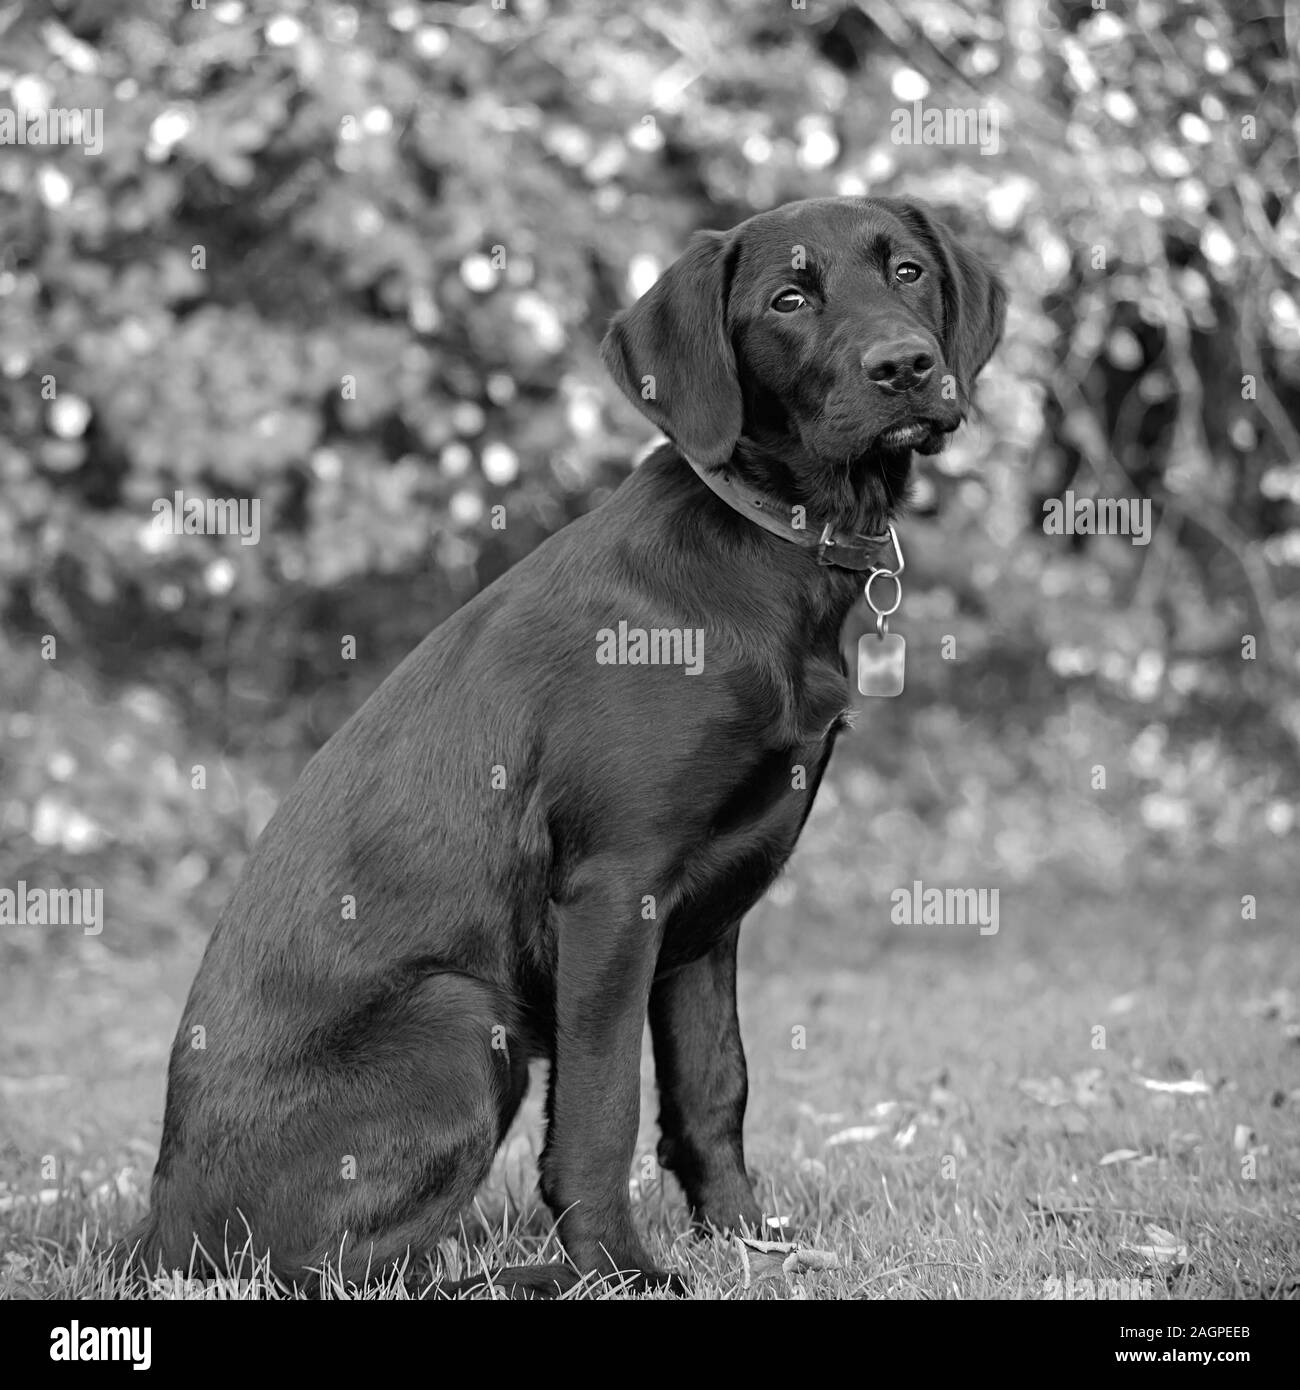 Against a blurred soft-focussed background, a young Labrador sits ready during outdoor training, eyes bright and fixed, anticipating the next command. Stock Photo